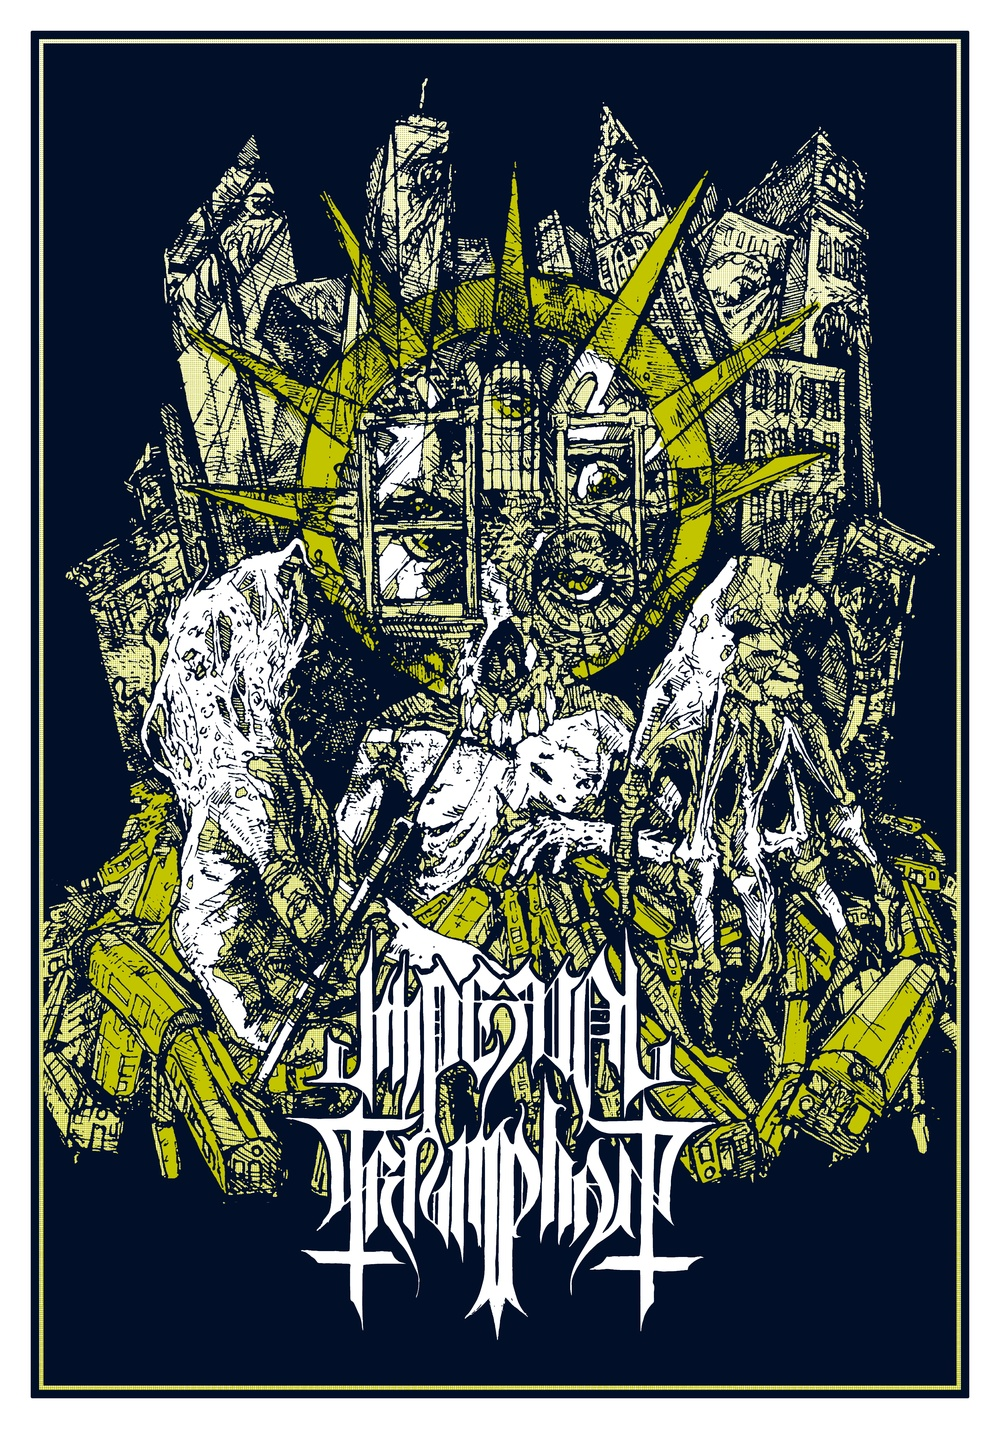 Imperial Triumphant Abyssal Gods cover final .jpeg